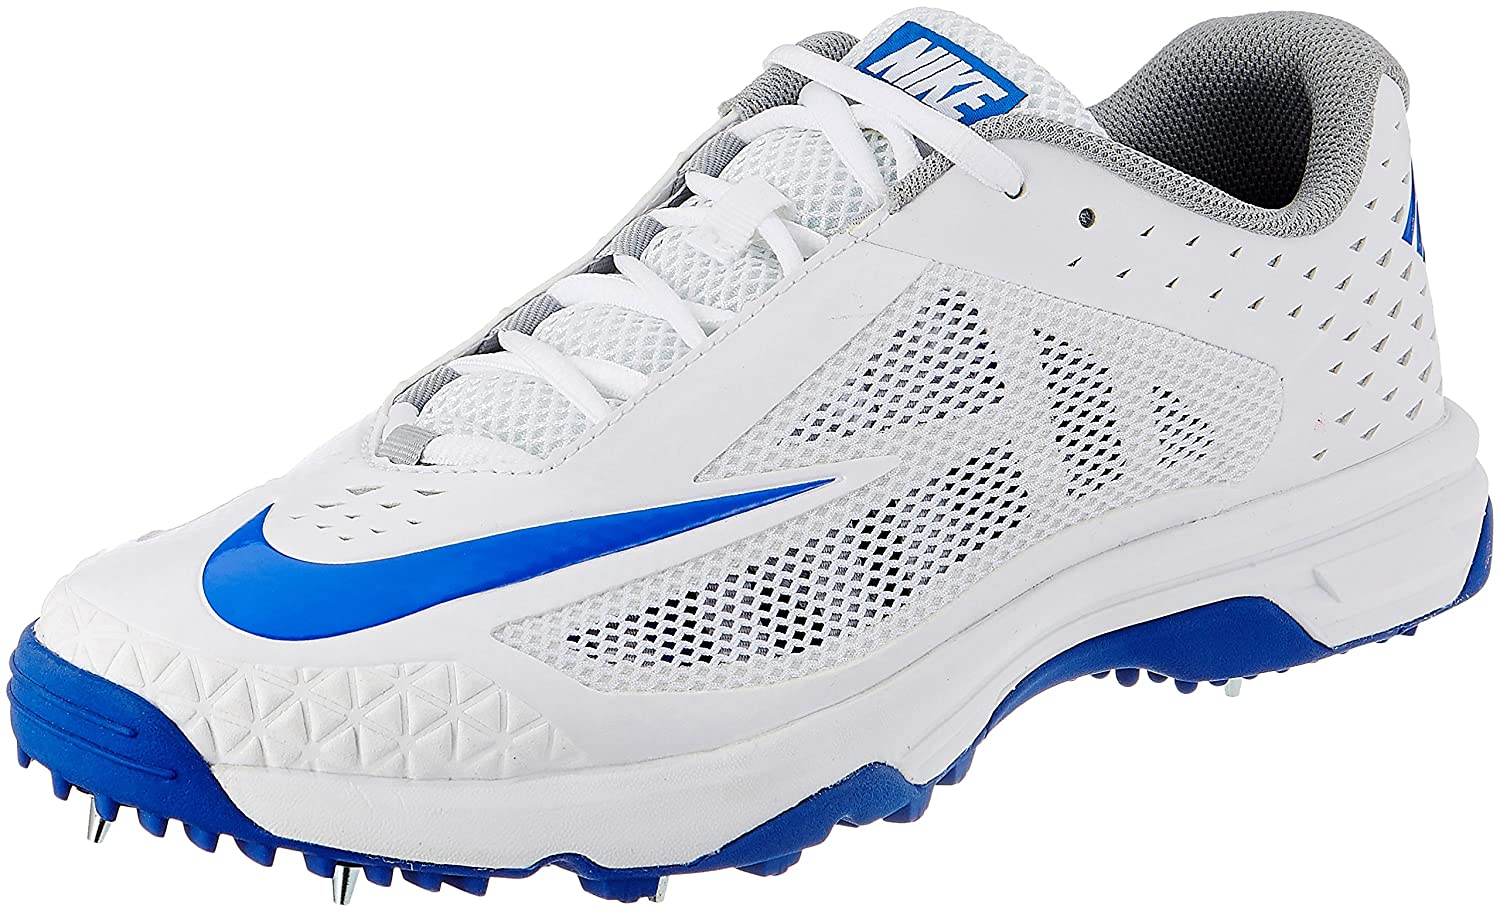 save off 6872c e5d84 ireland nike lunar dominate 2 cricket shoes nike mens domain white racer  blue and metallic silver